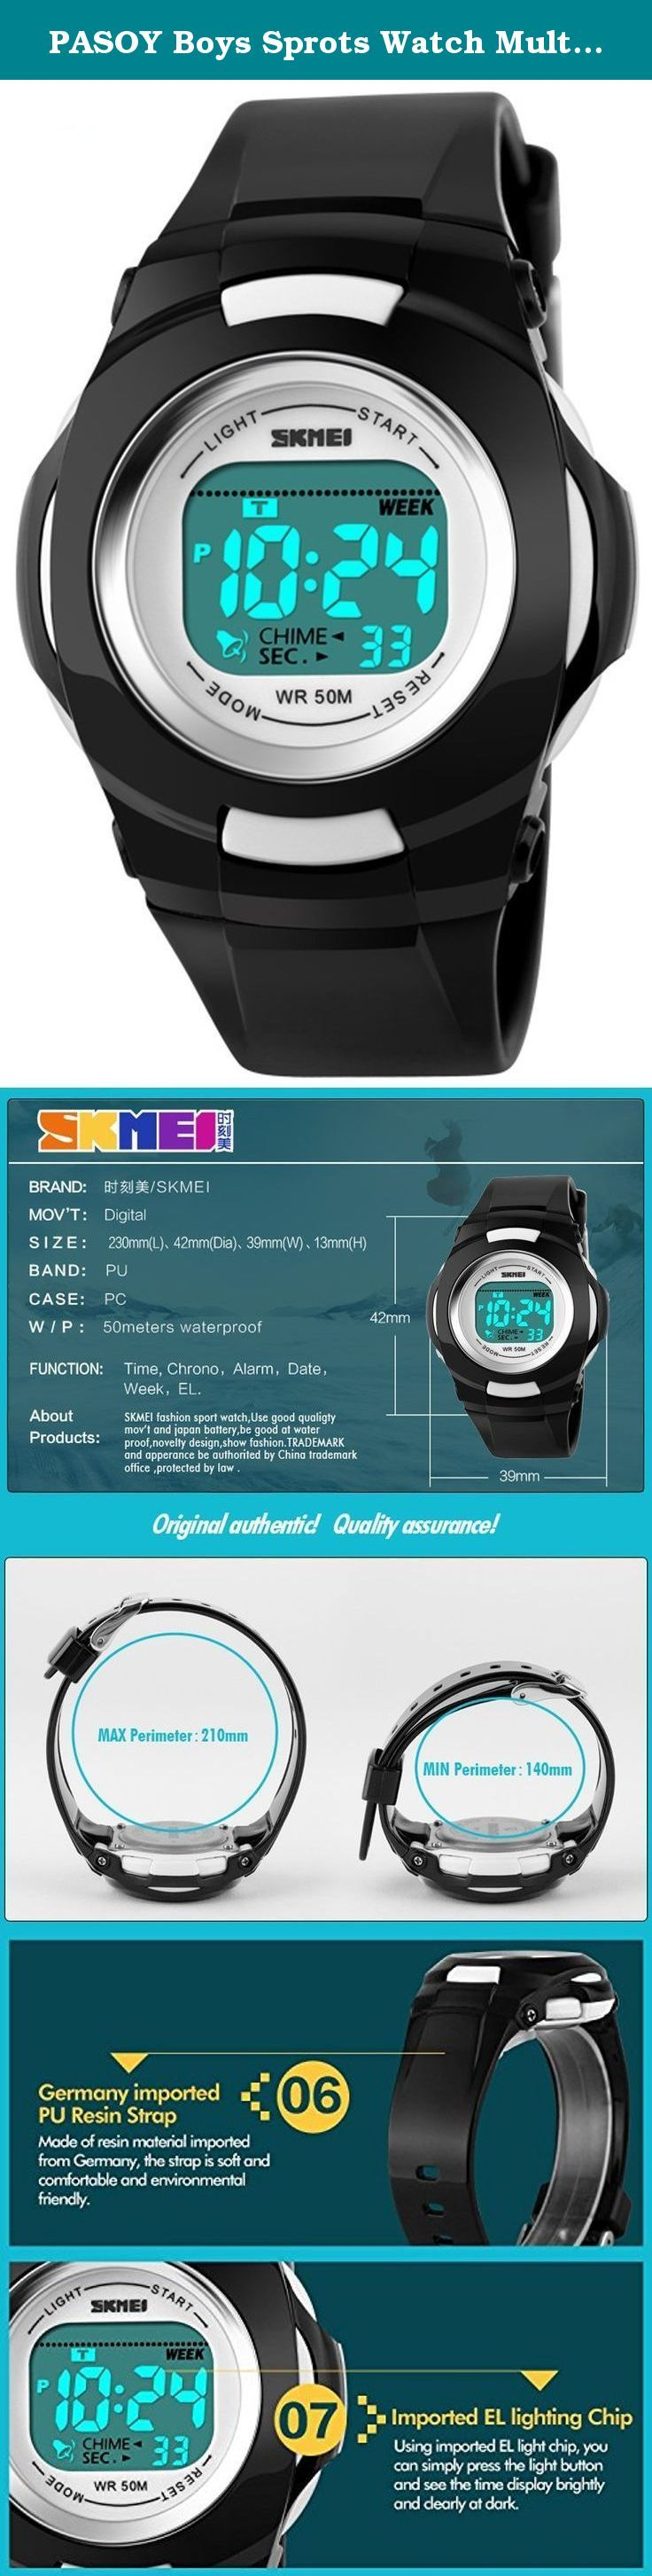 PASOY Boys Sprots Watch Multi-functional Waterproof Swim Backlight Alarm Girls Silicone Strap Watches. fashion style for children High Quality plastic Band,durable and pratice, gives you a new classic definition. Multifunction: colorful led back light, alarm, chronograph, date, week. Scratchless glass, shock resistant, quality plastic band, soft and comfortable Water resistant to 164 feet (50M),suitable for snorkeling, as well as swimming, not diving .